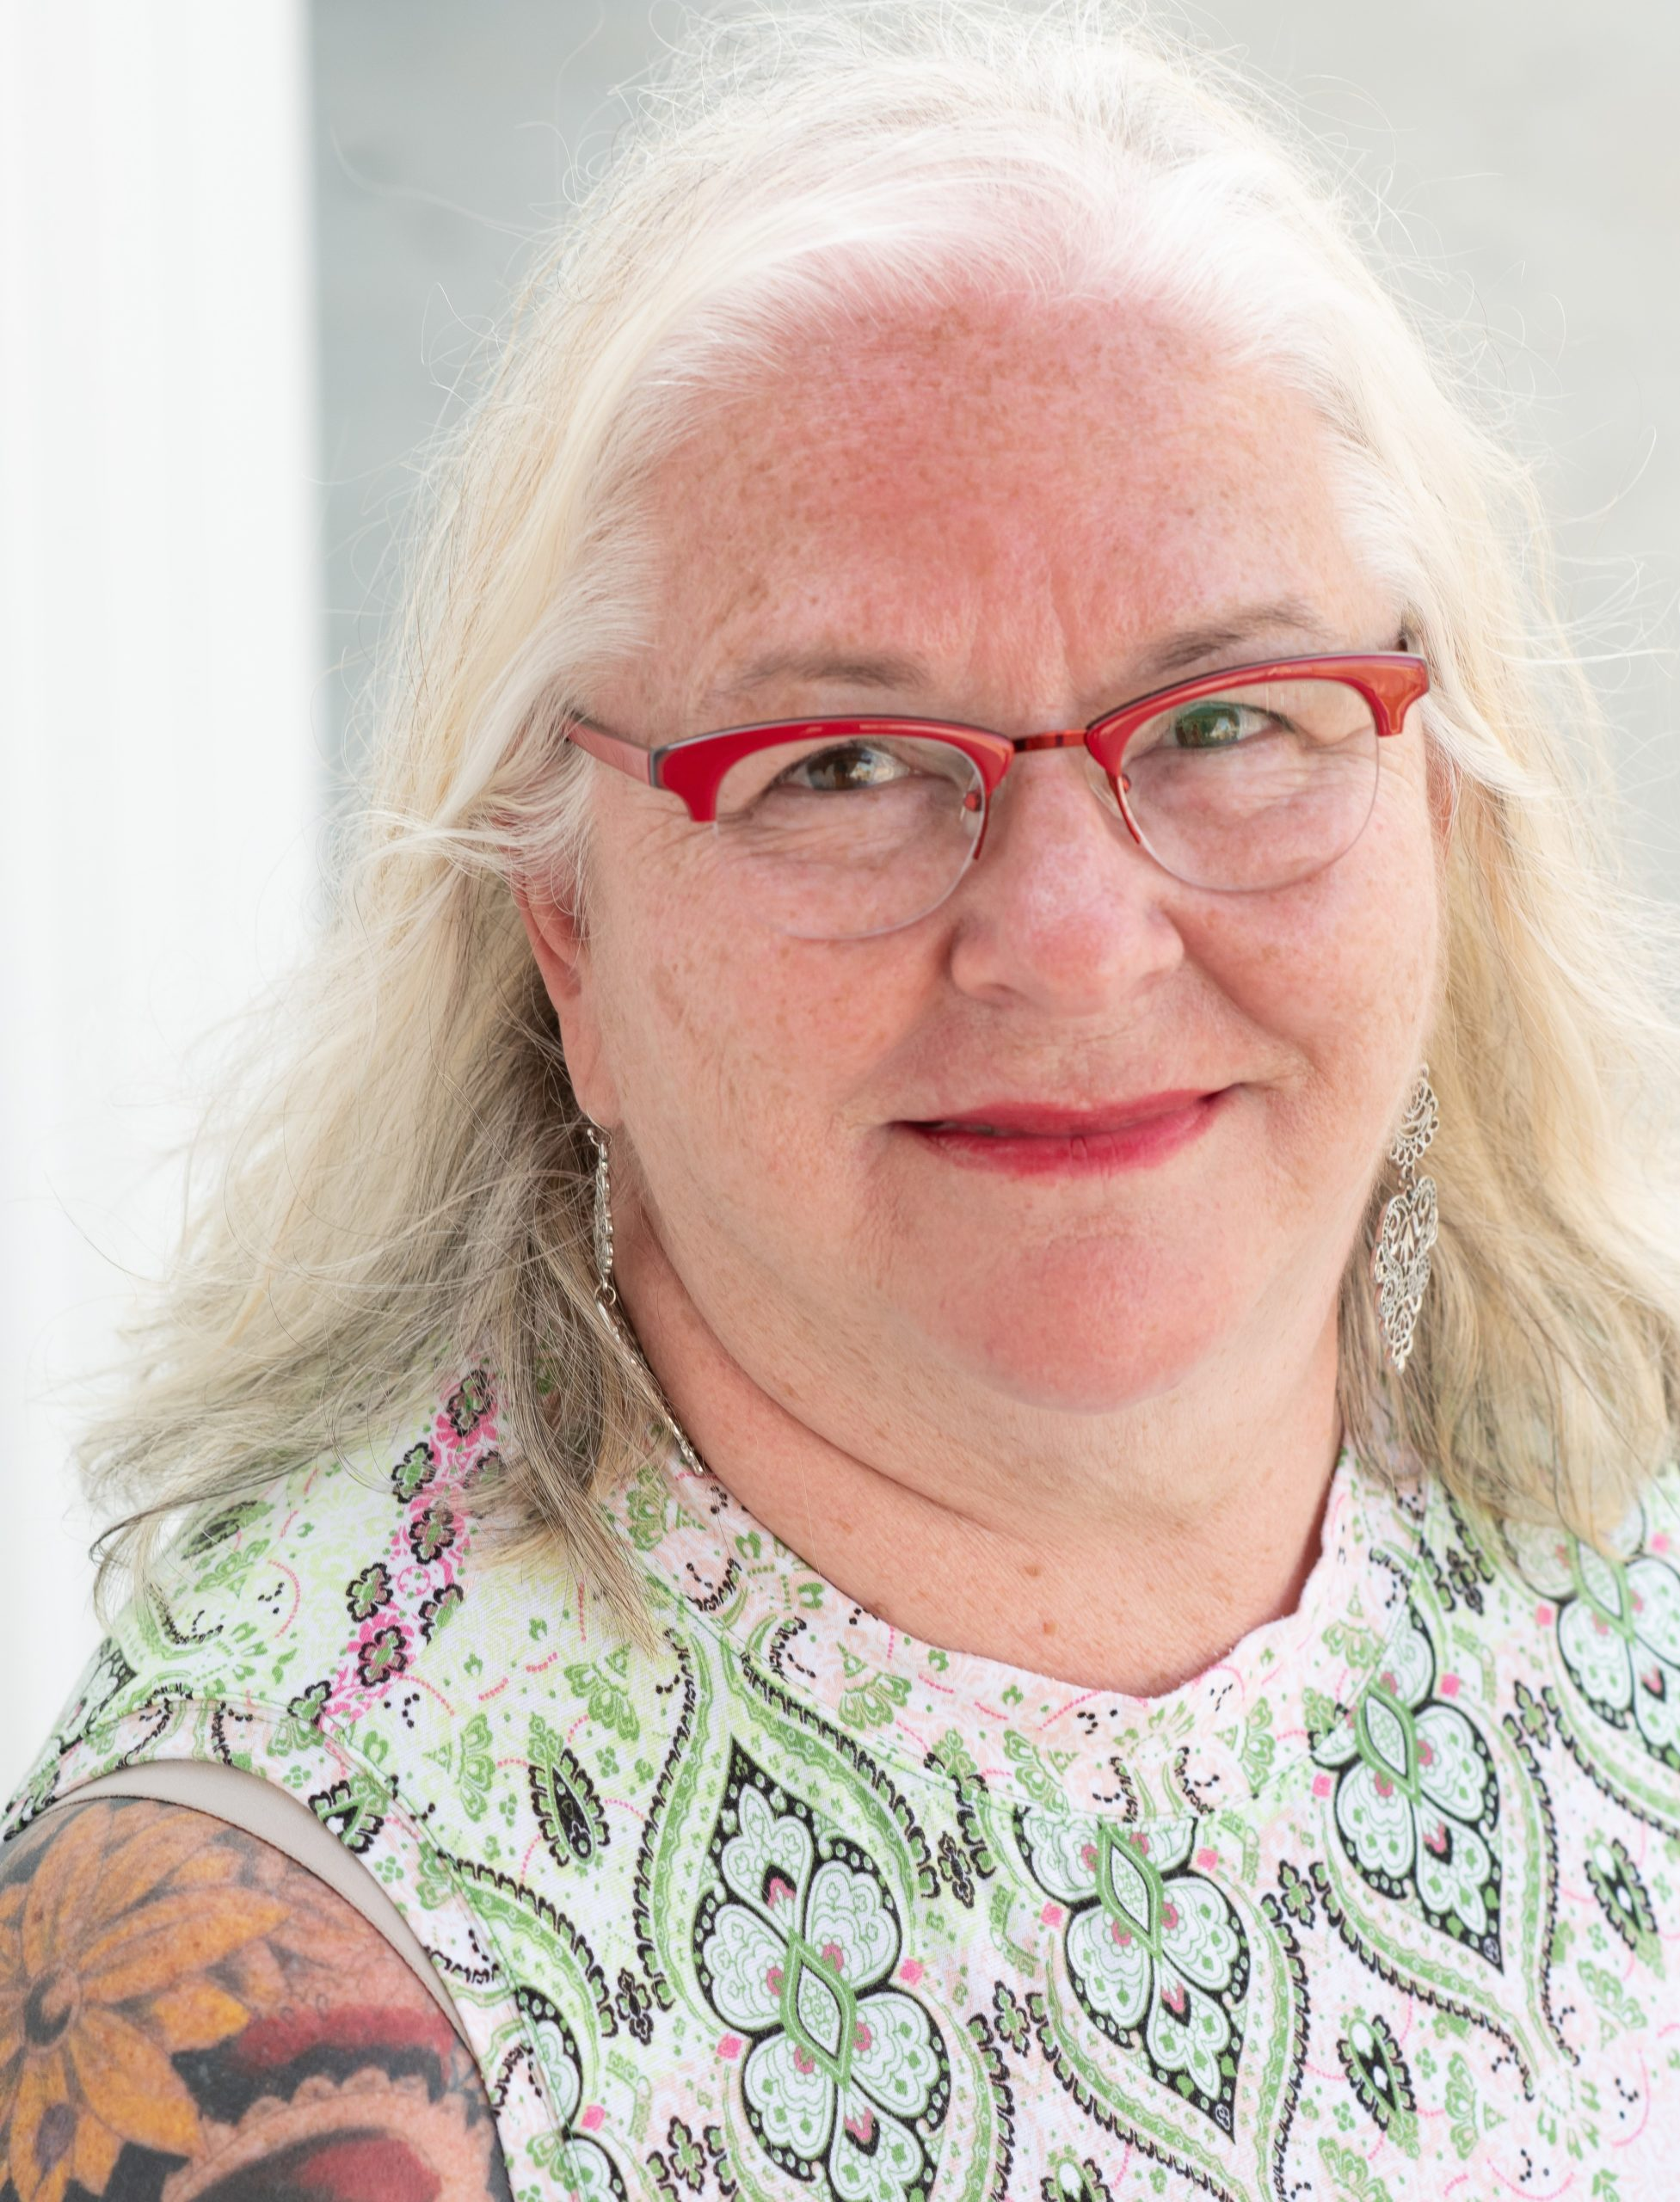 Deb Brown, a white woman with long white hair, poses in front of a light background, wearing red glasses, red lipstick, and a green and white printed sleeveless top